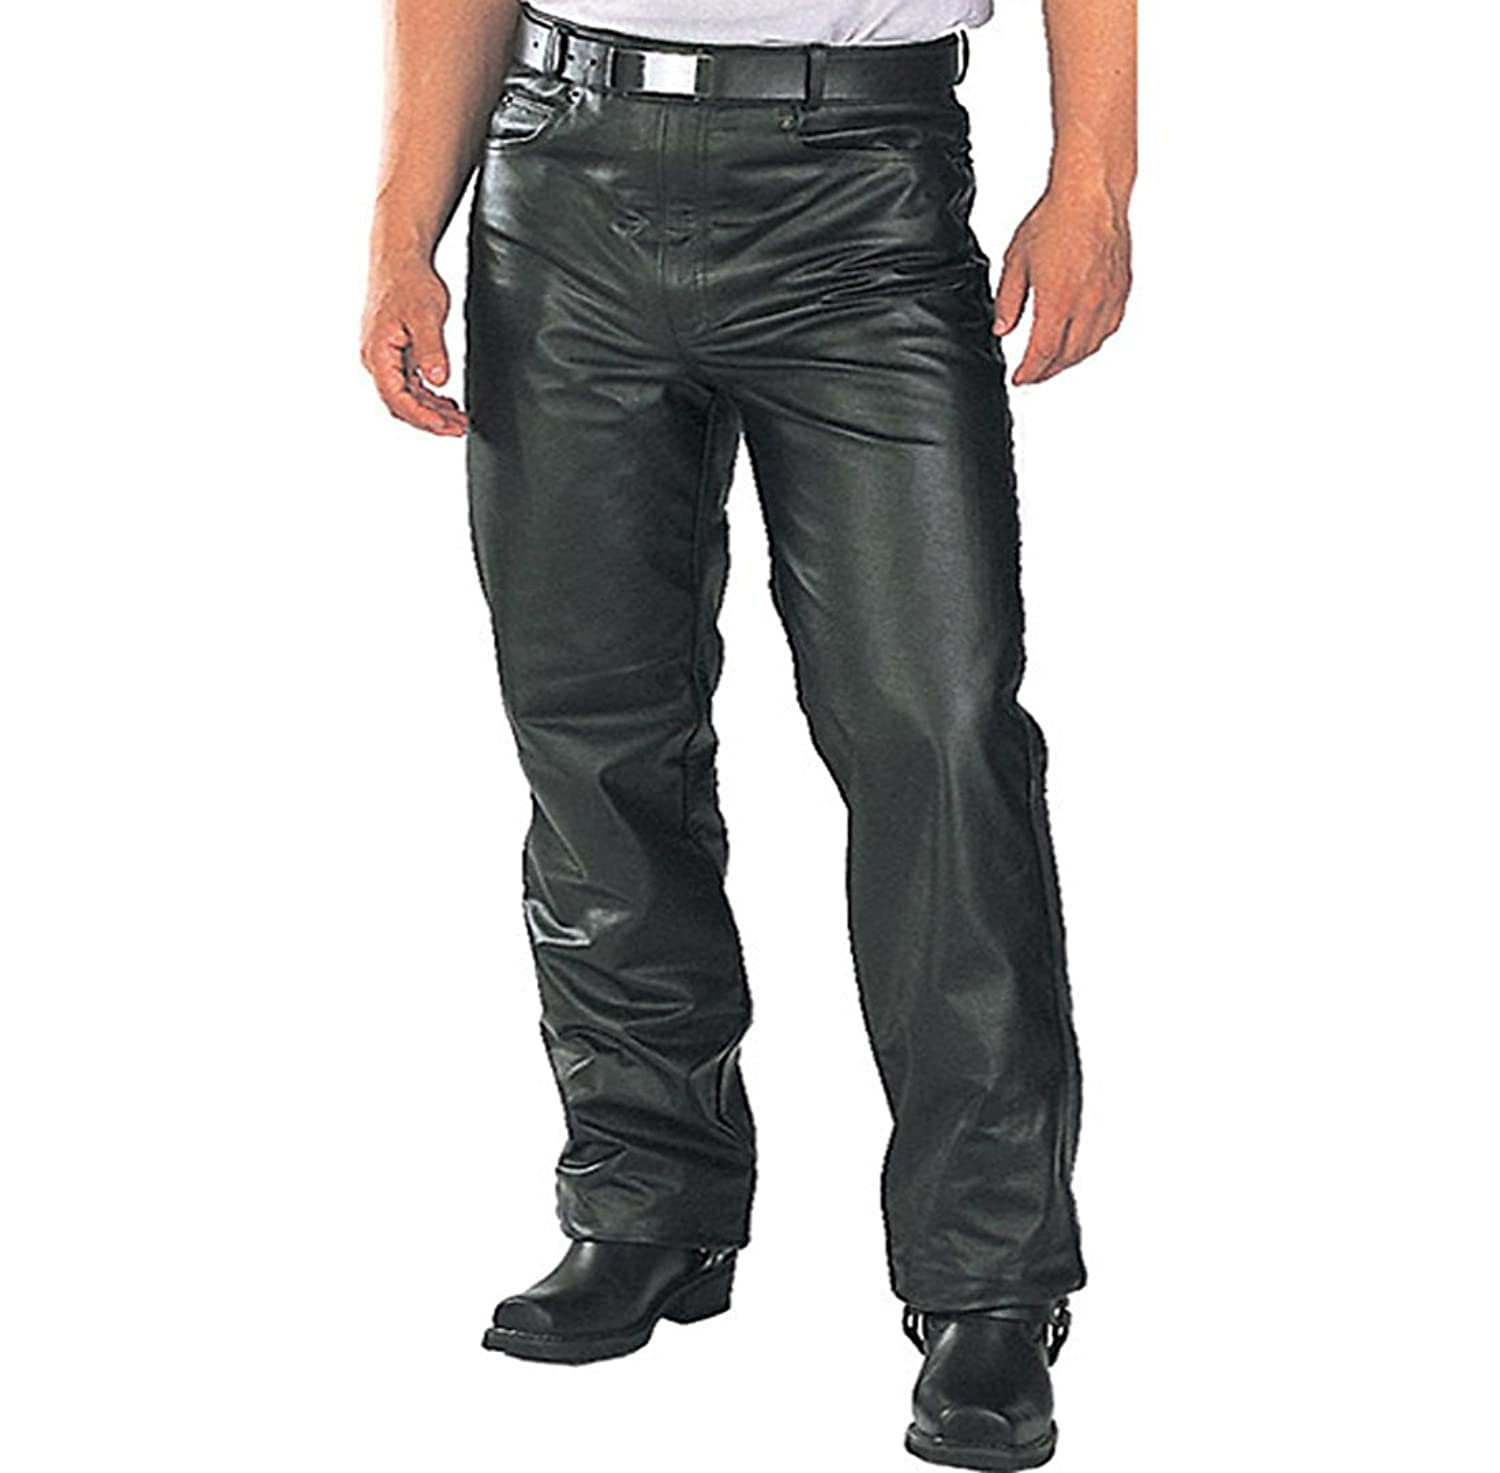 Mens Classic Soft Cow Hide Leather Pants